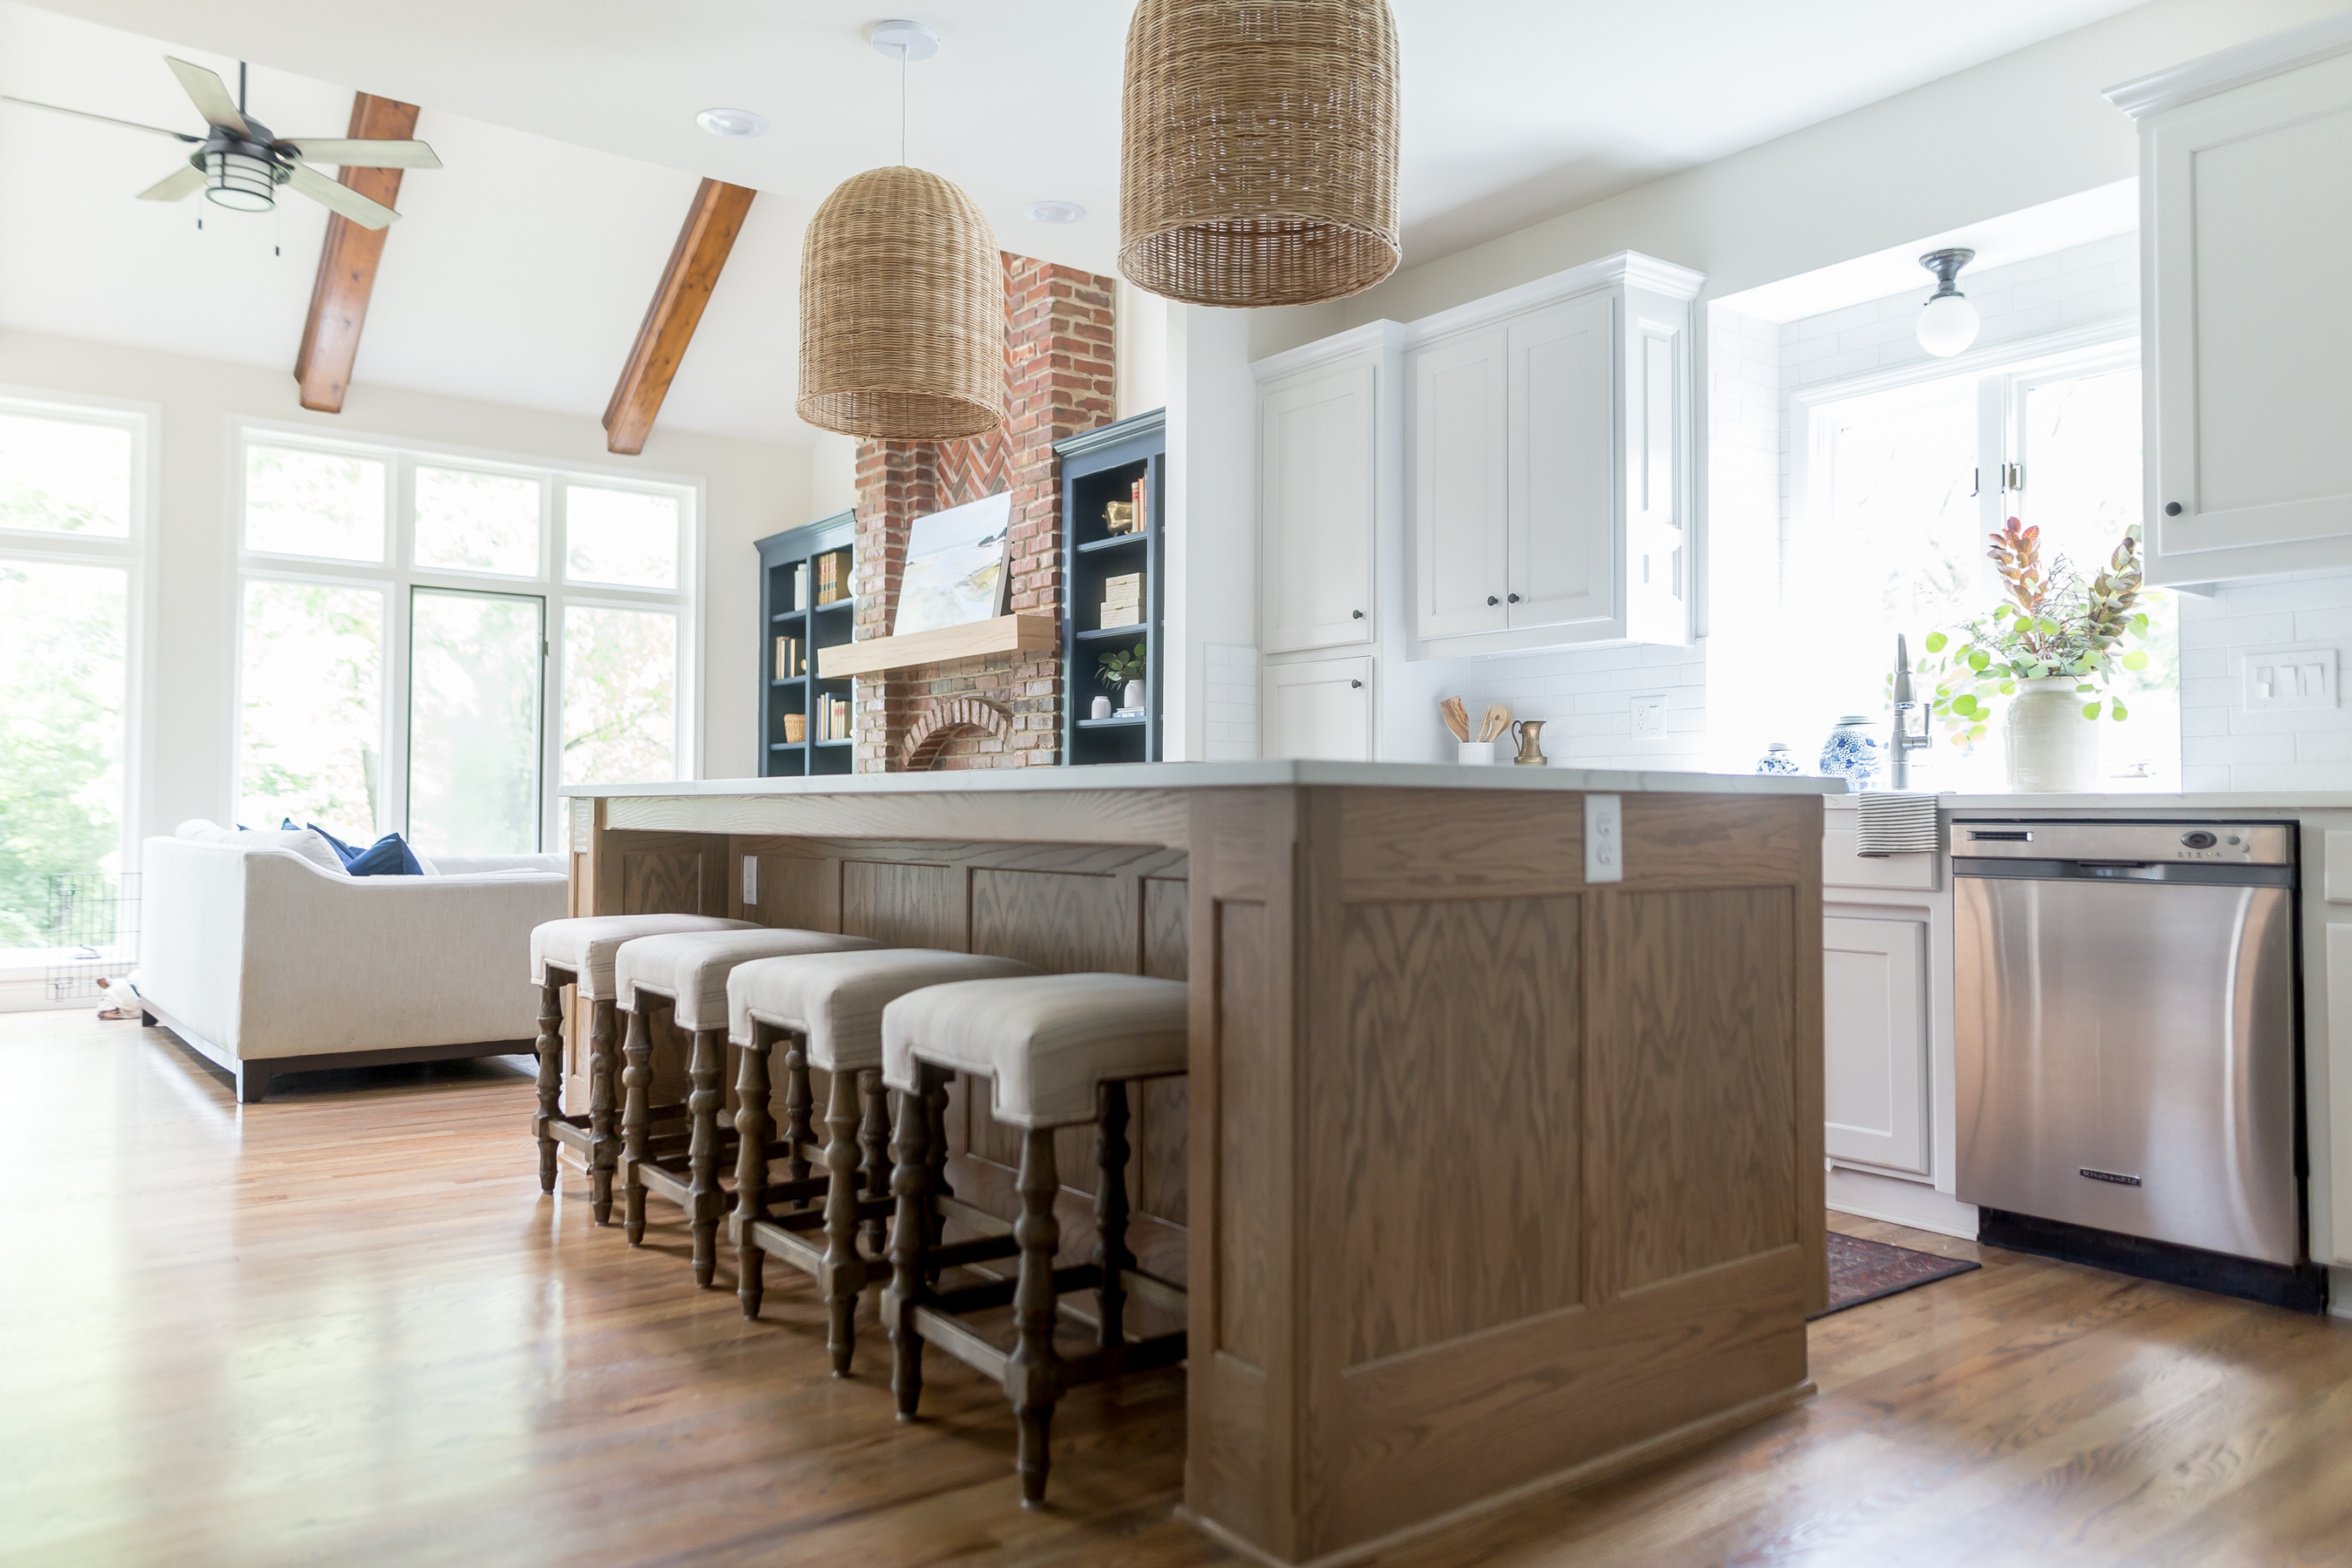 light gray cabinetry, Serena and Lily woven island pendants, counter stools